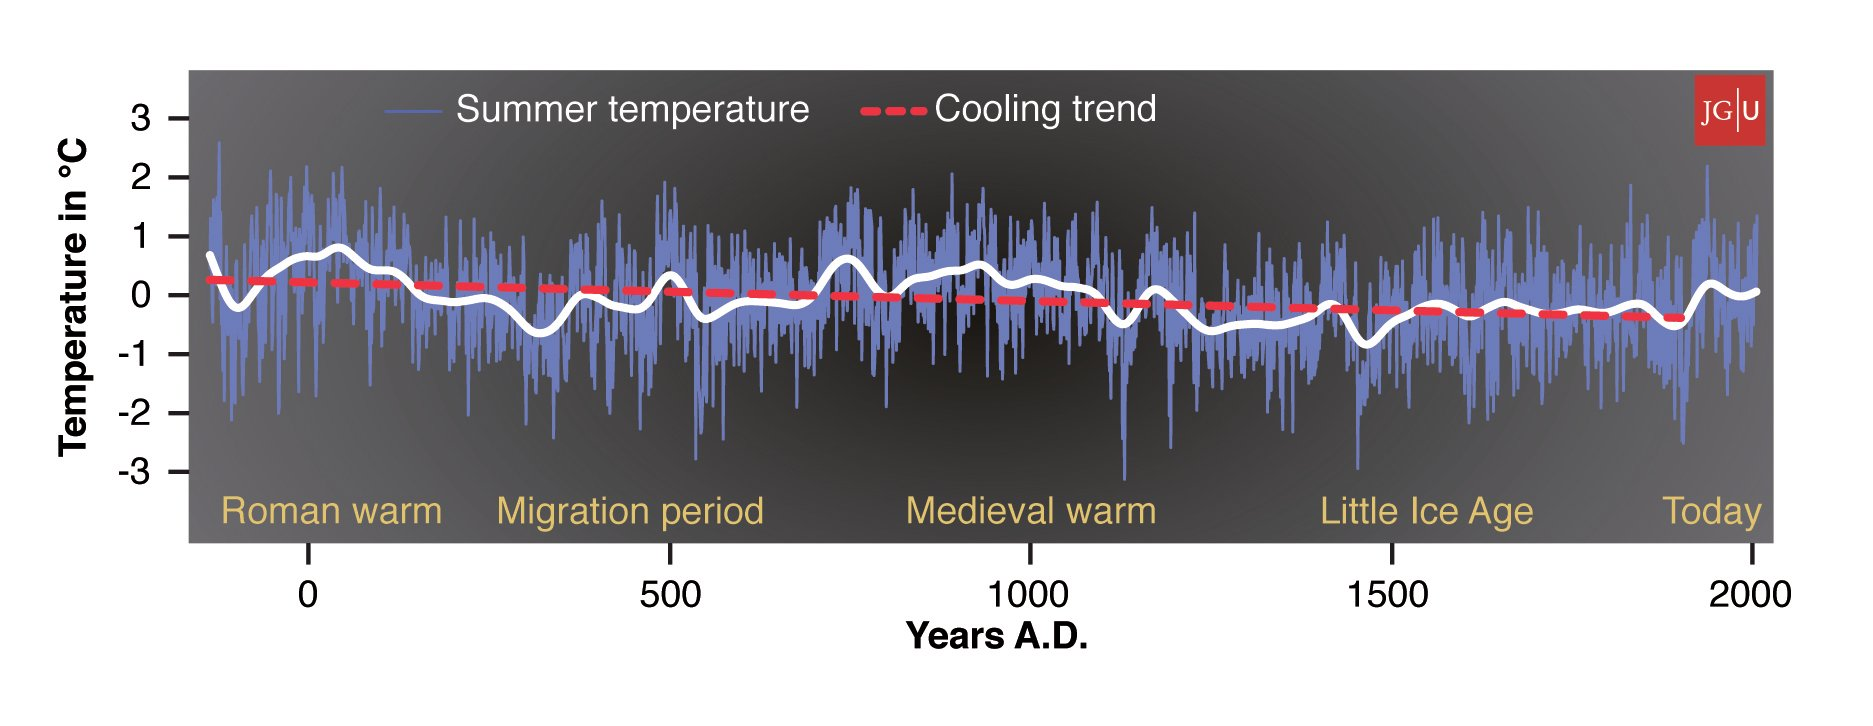 Tree-Ring data shows that Northern Europe has been cooling over the last 2000 years